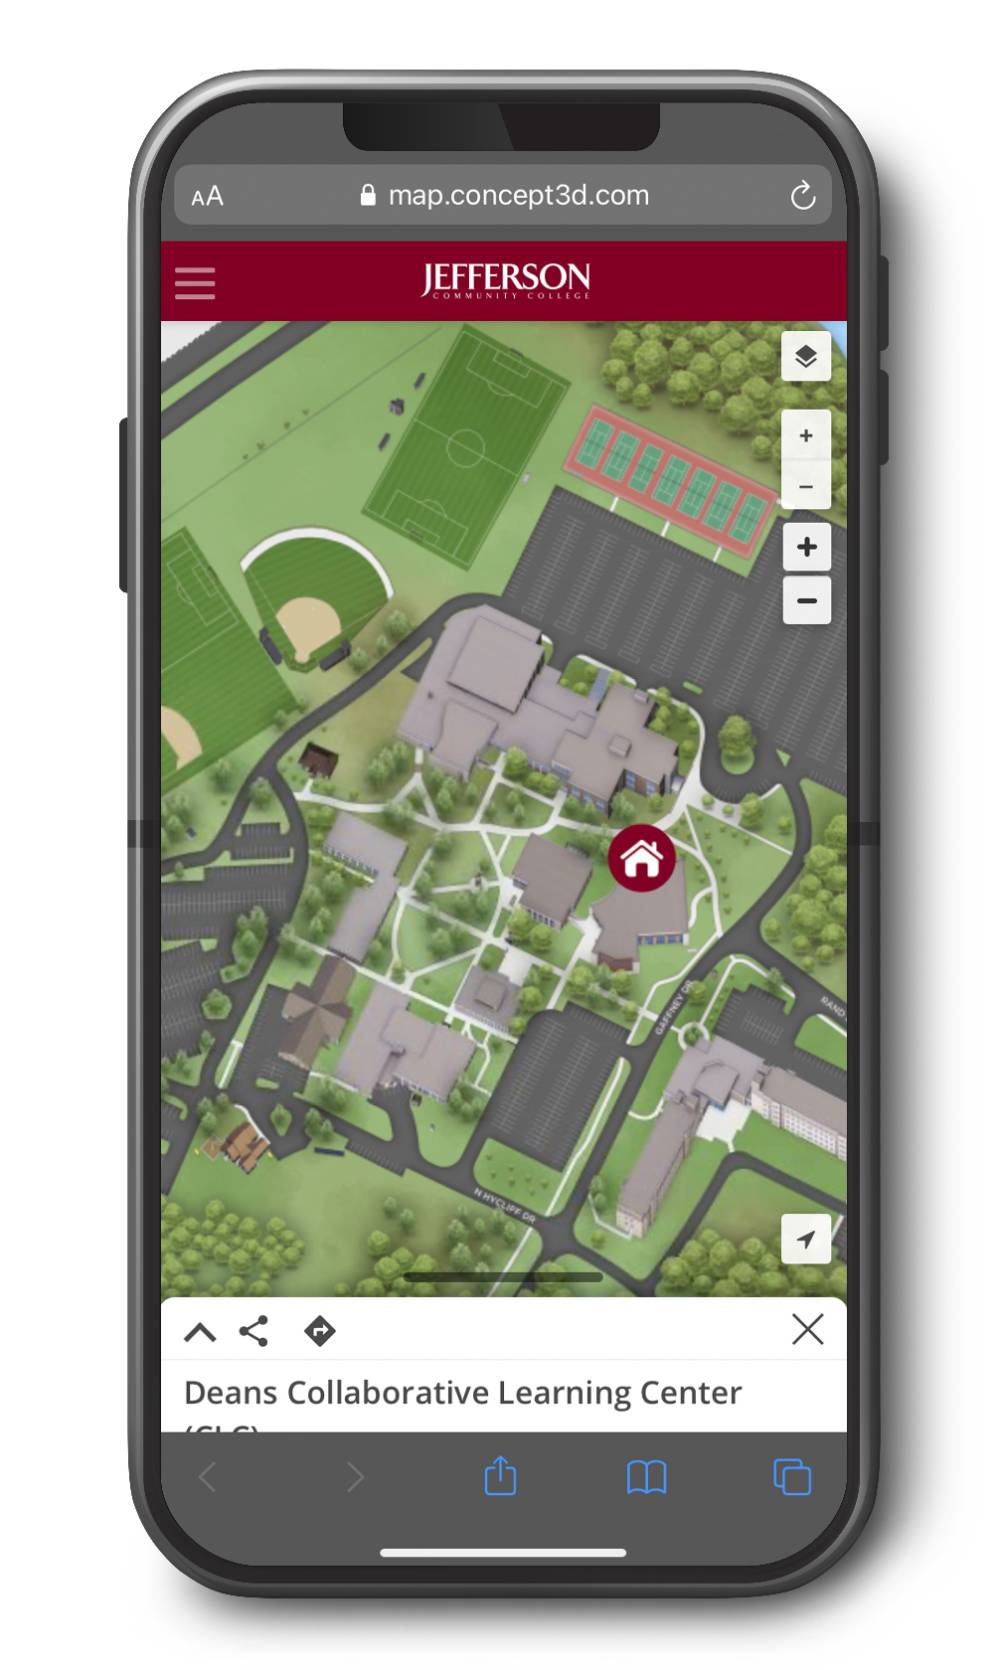 campus map on smart phone; link to campus map